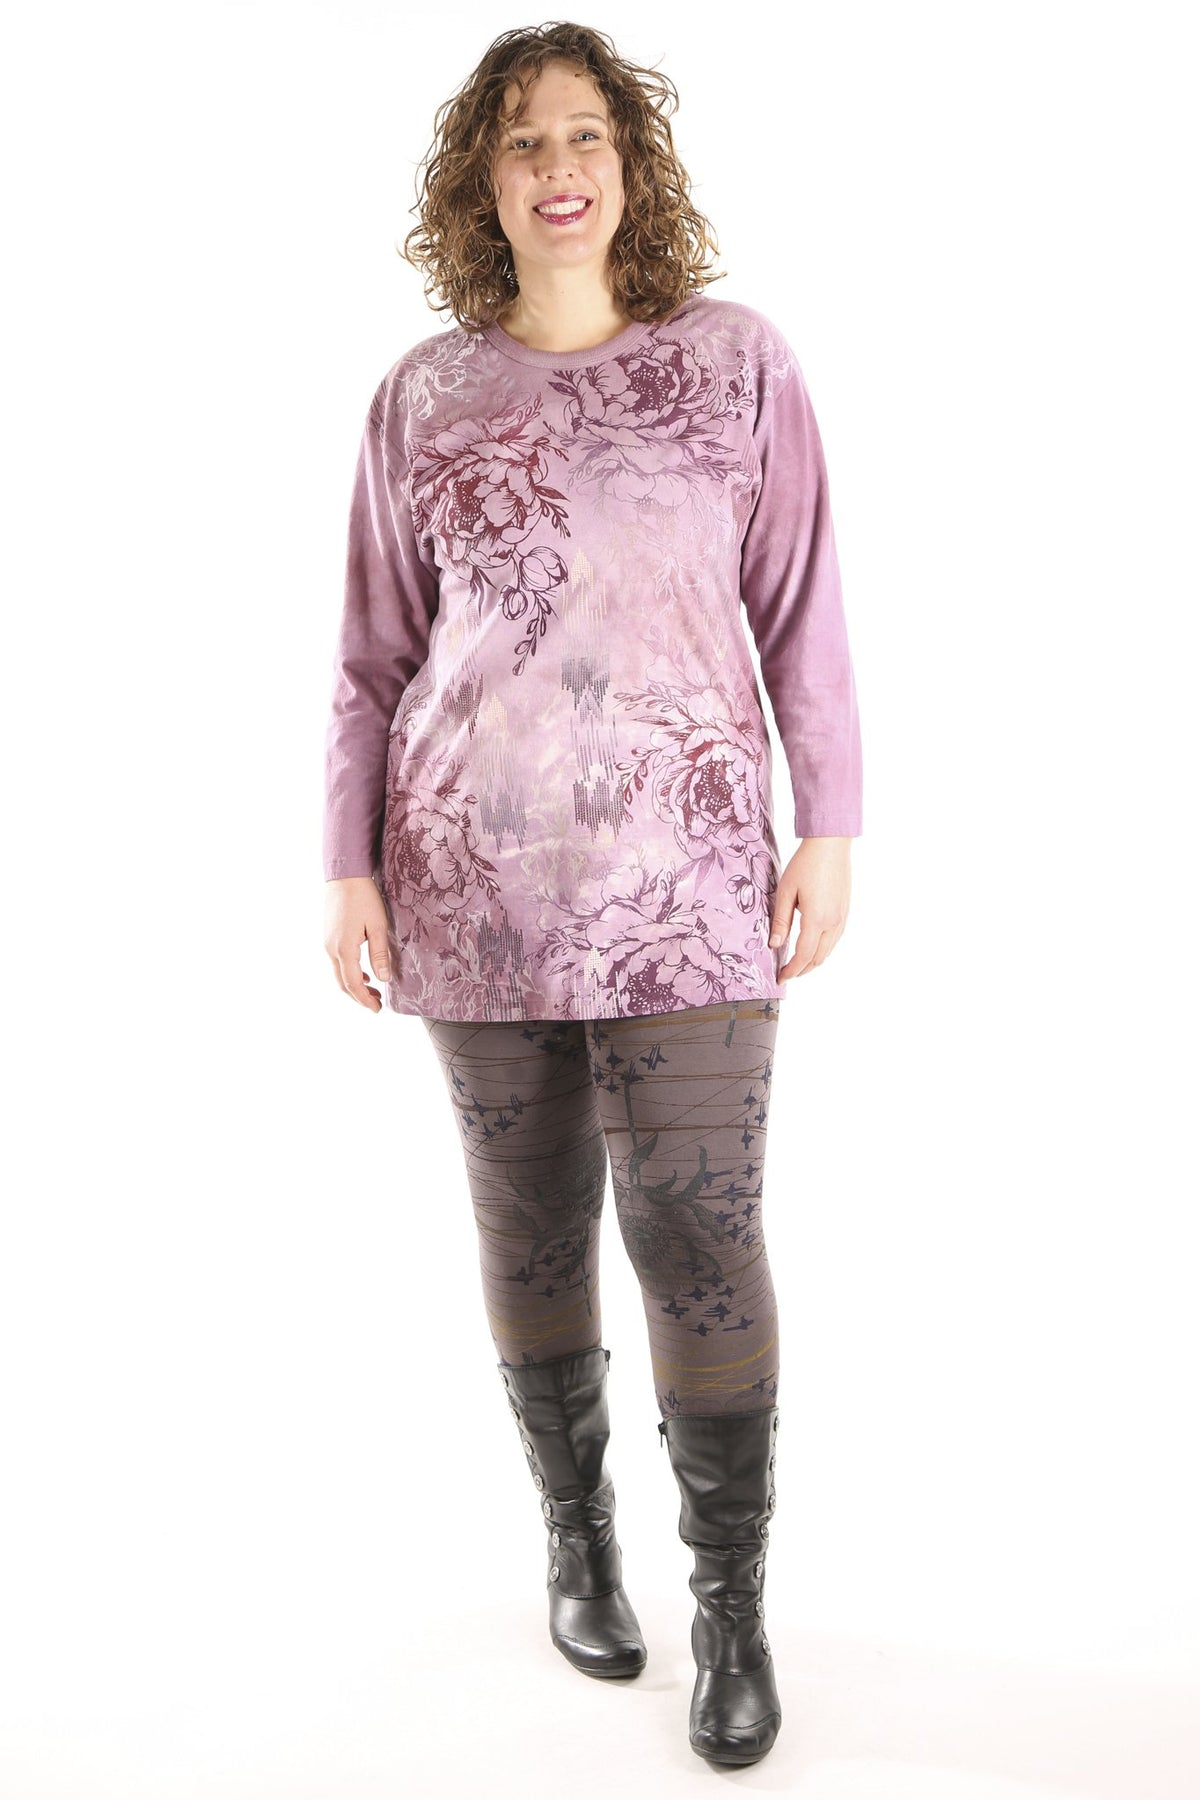 1157HD L/S Hand Dyed Studio Tee Mottled Berry Pinks-P